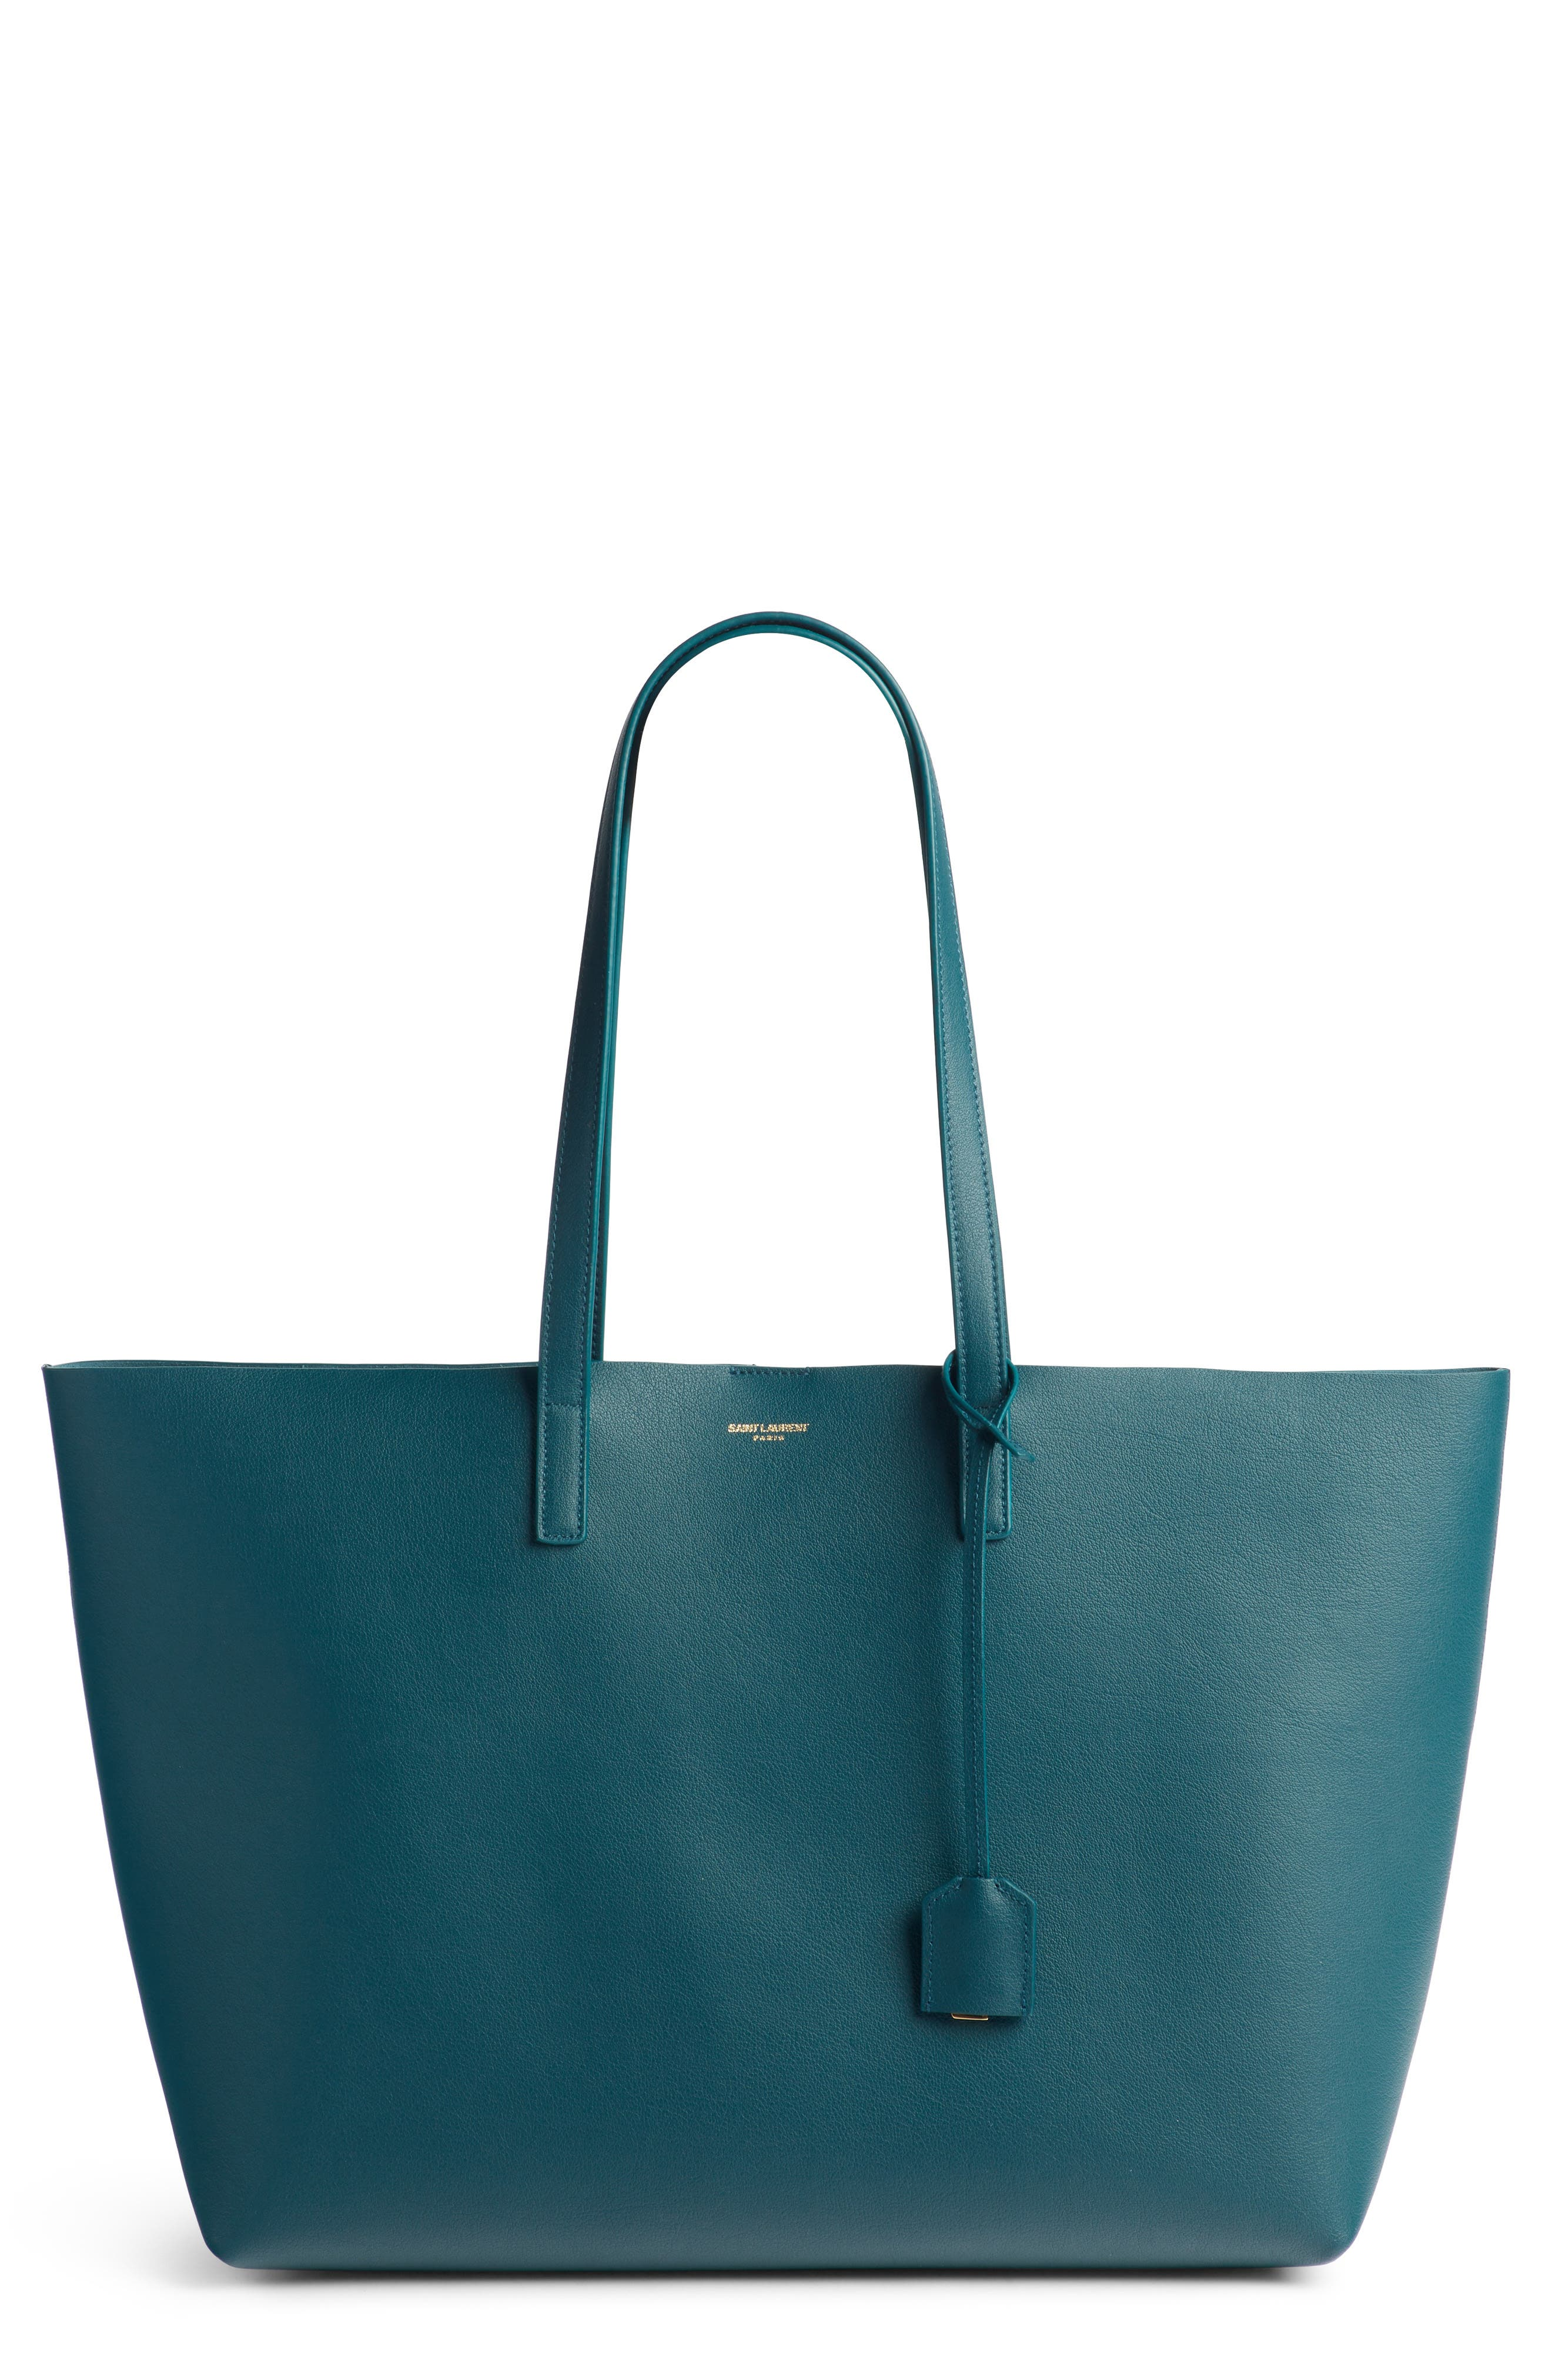 'SHOPPING' LEATHER TOTE - BLUE/GREEN